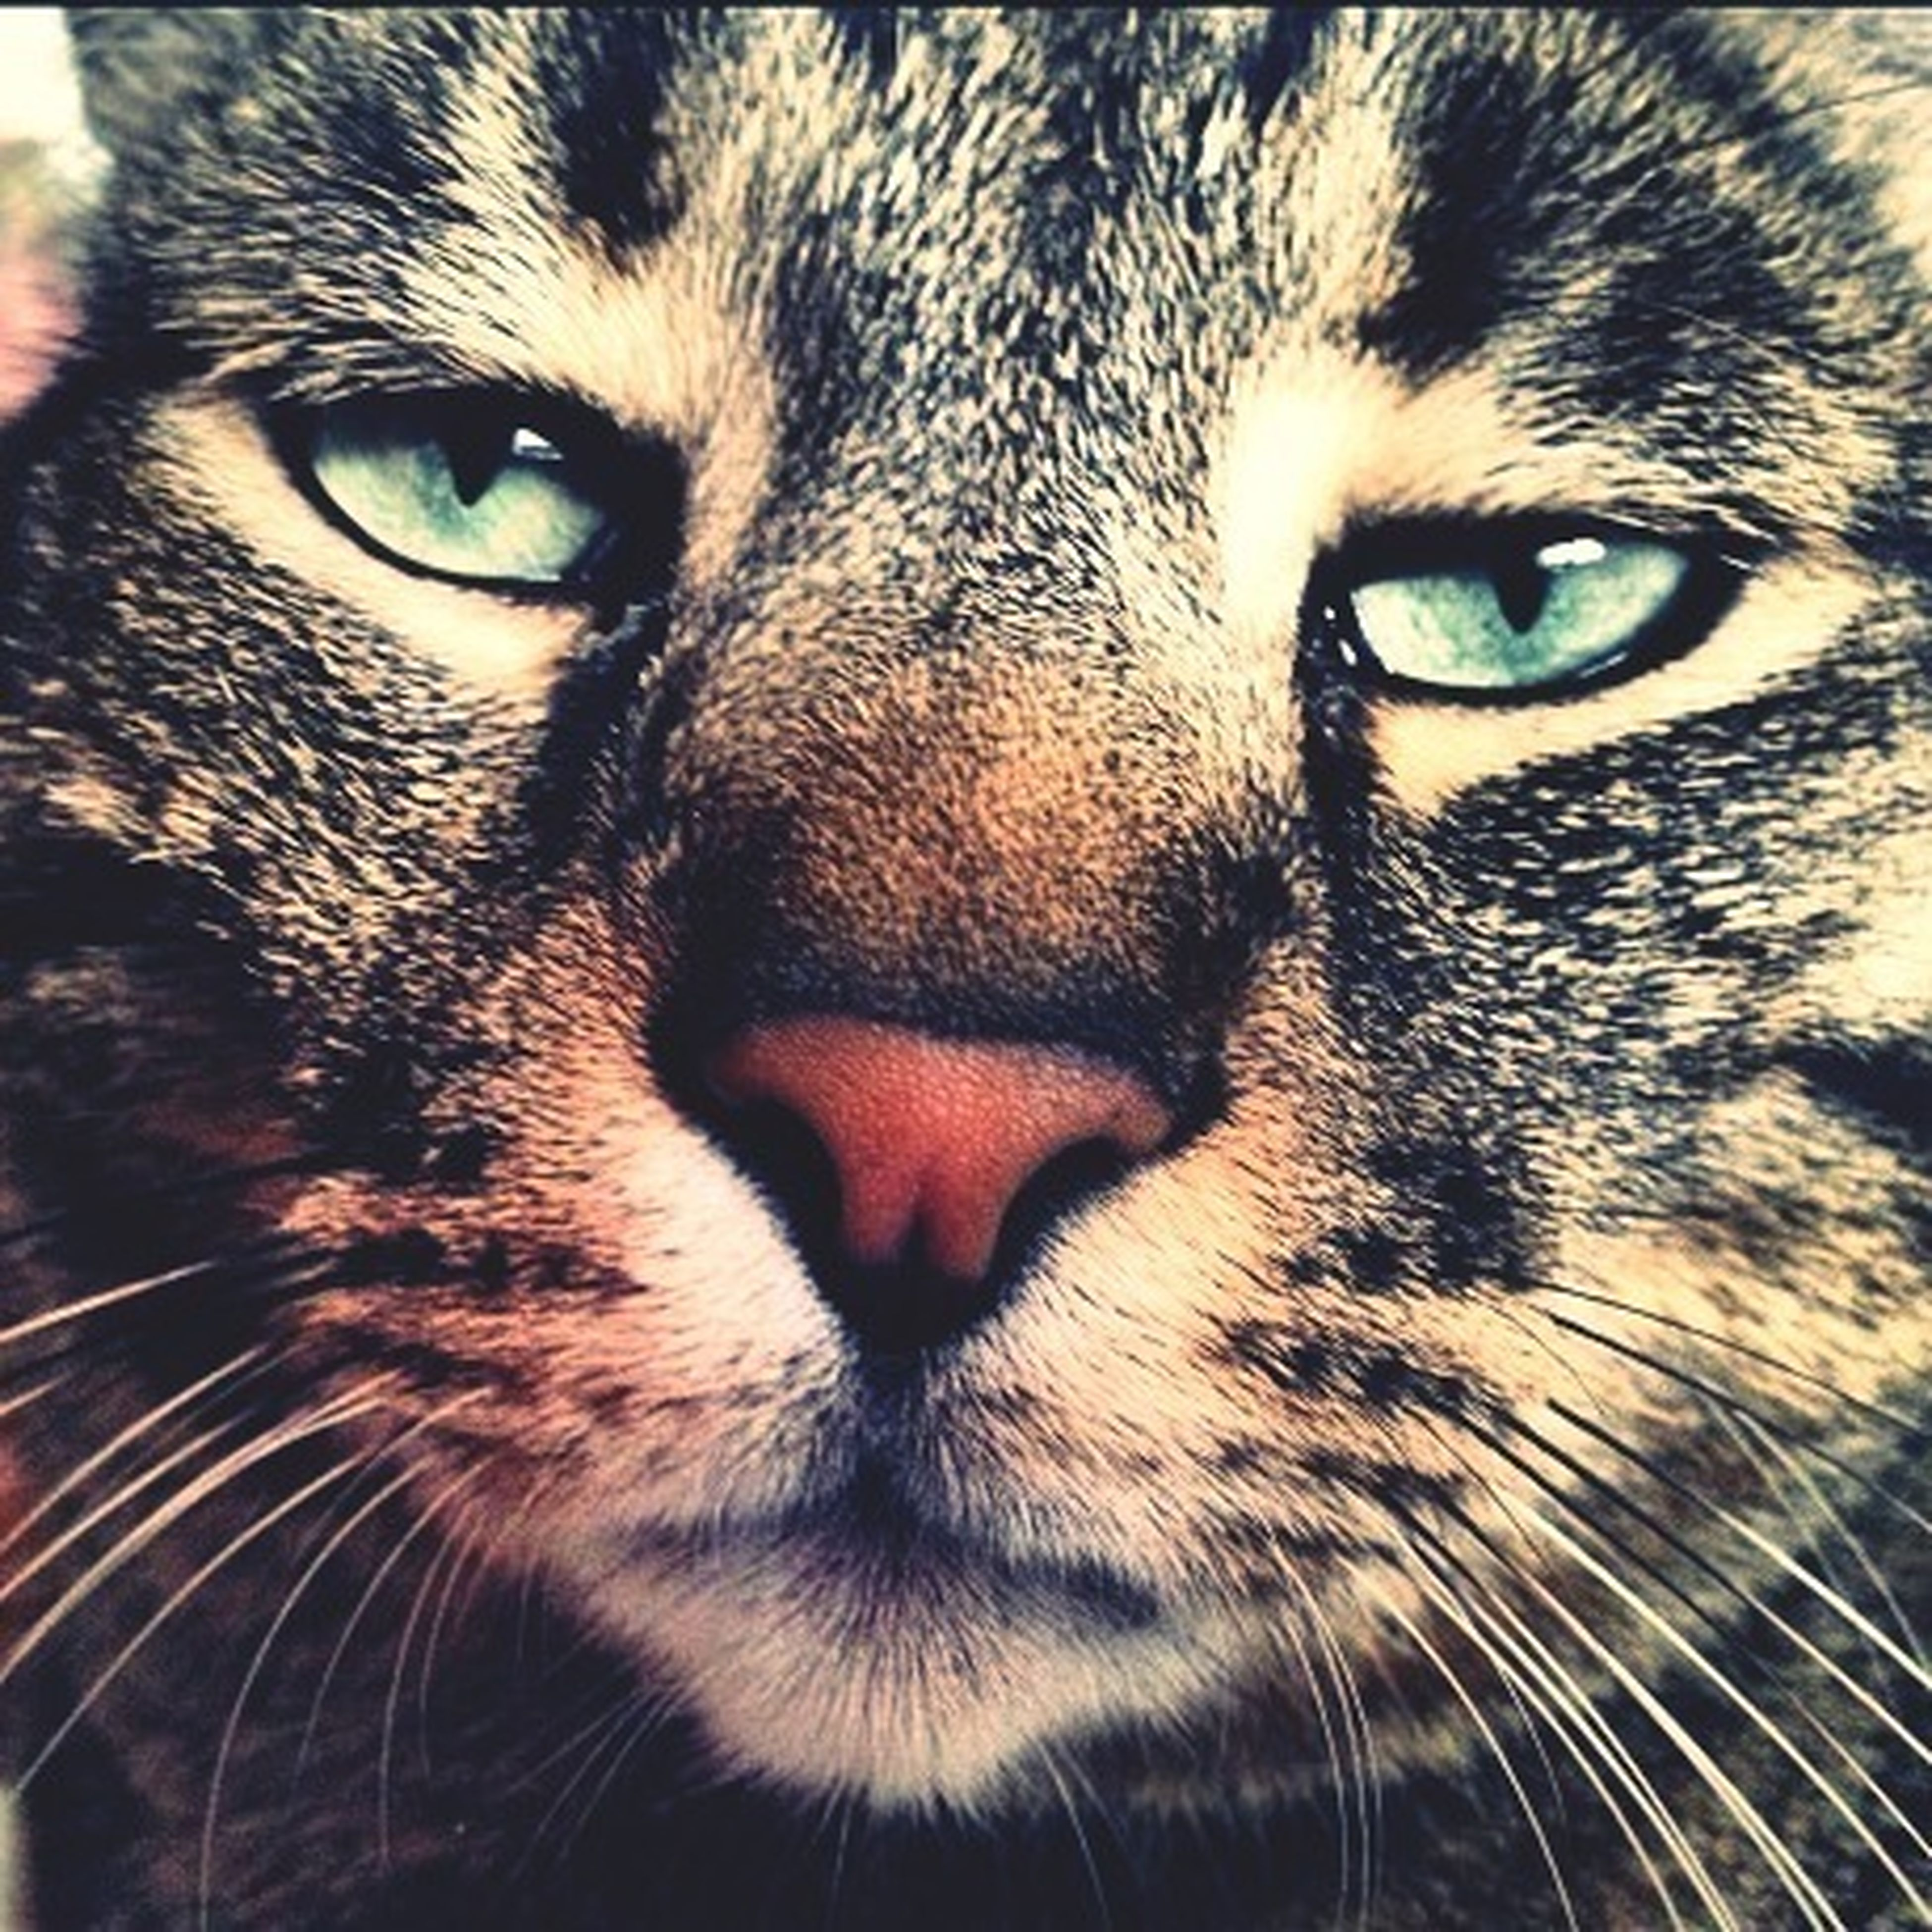 animal themes, one animal, pets, domestic animals, mammal, animal head, portrait, close-up, looking at camera, animal body part, whisker, animal eye, focus on foreground, snout, domestic cat, feline, part of, cat, no people, front view